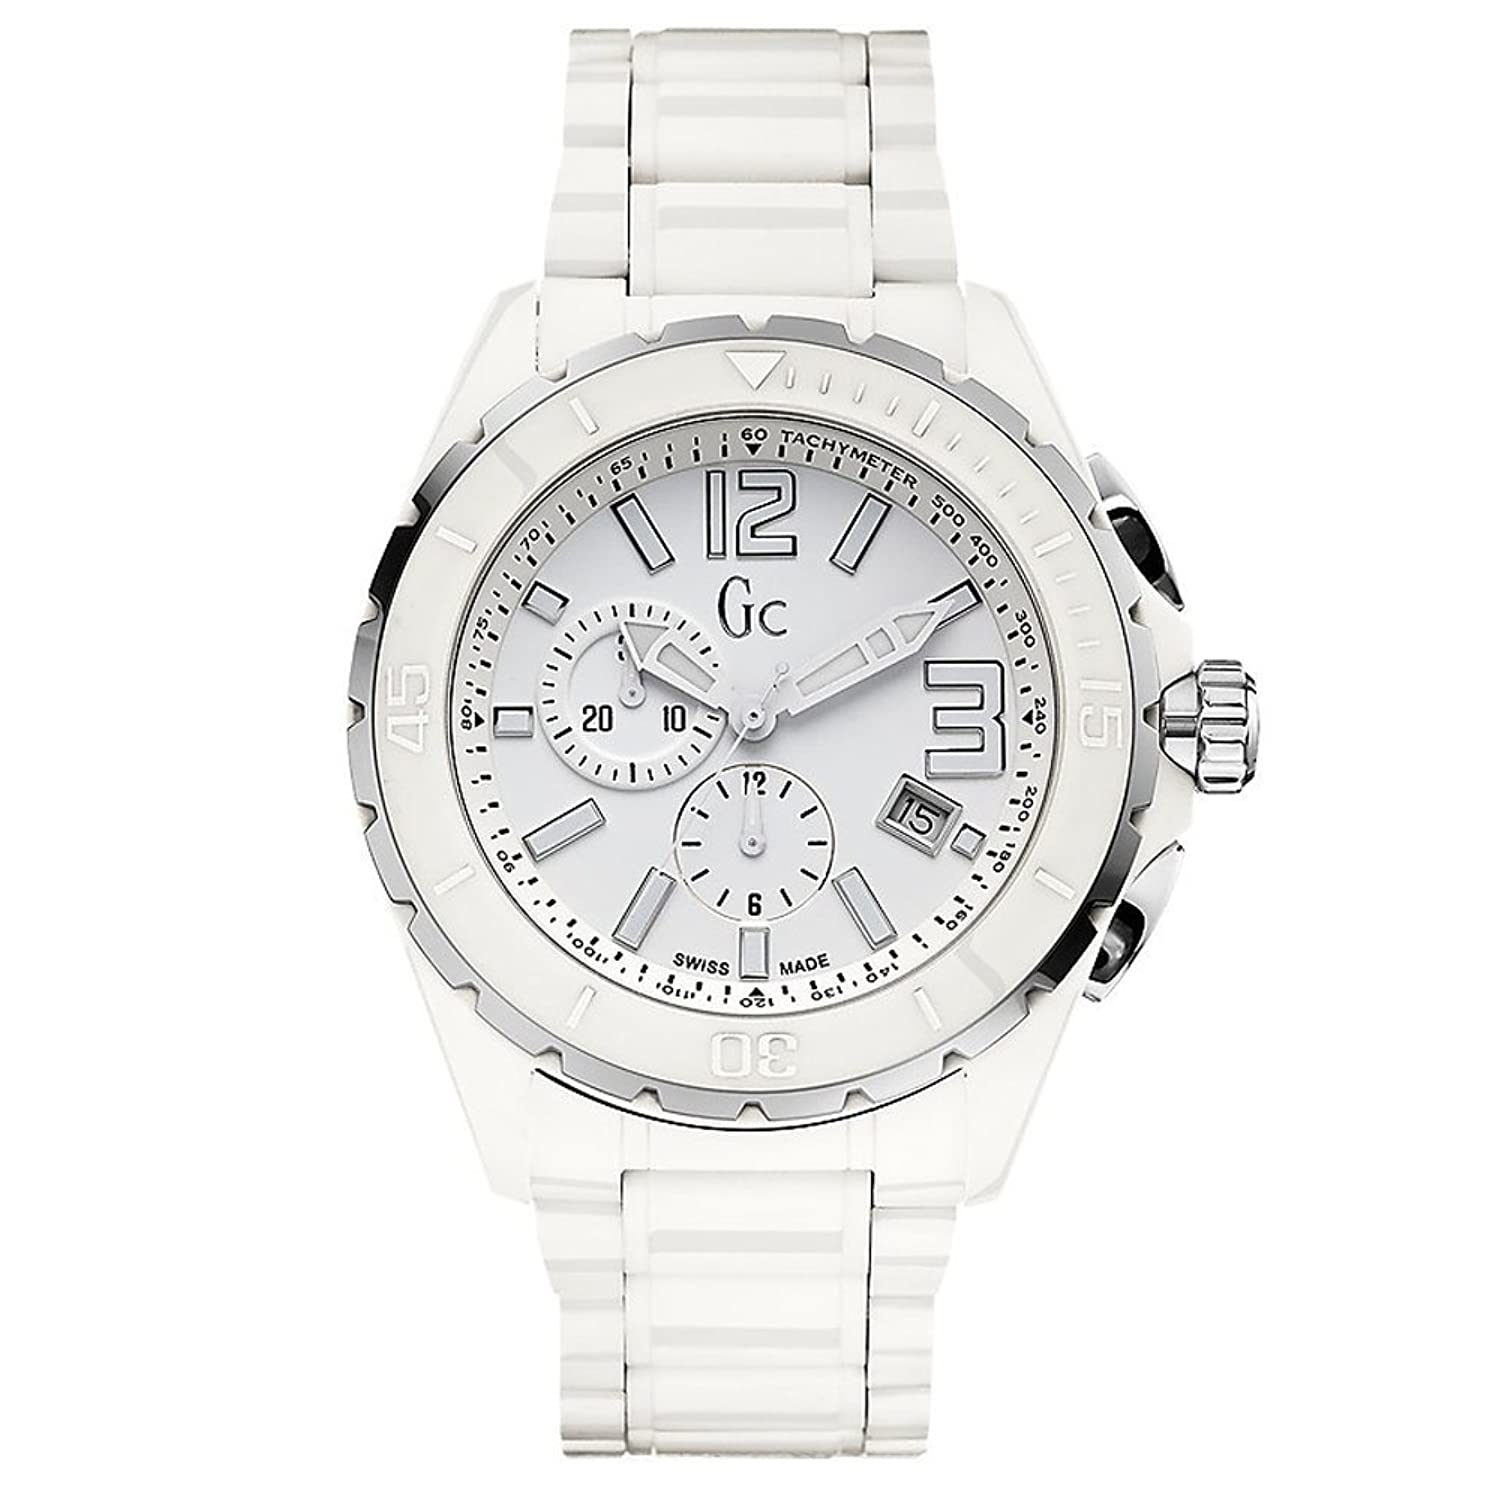 GUESS COLLECTION HERREN & DAMEN CHRONOGRAPH WEIß RESIN ARMBAND UHR X76015G1S